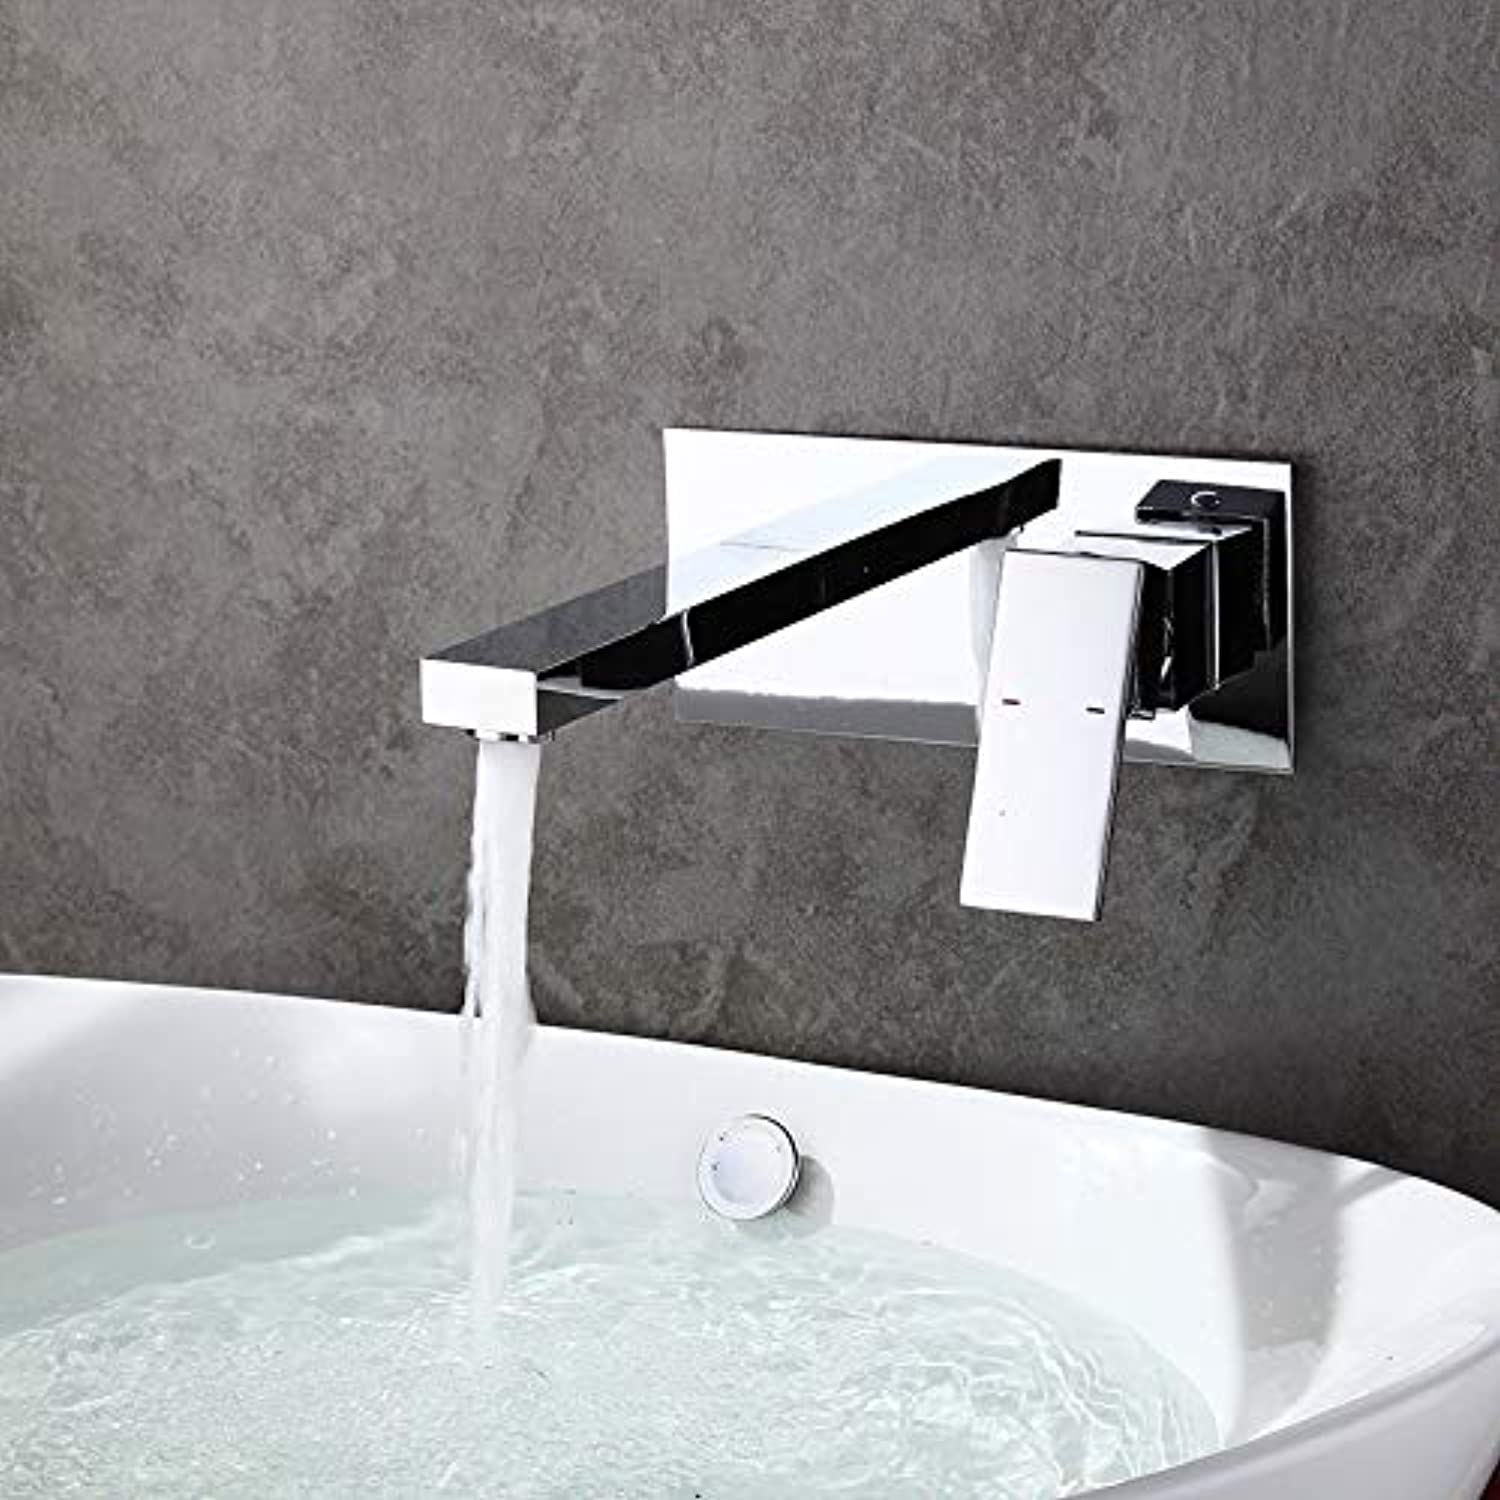 ROKTONG Sink Taps Filter Taps Wall-Mounted Basin Faucet Concealed Wall-Mounted Washbasin Faucet Wall-Mounted Basin Wash Basin Ceramic Basin Waterfall Faucet